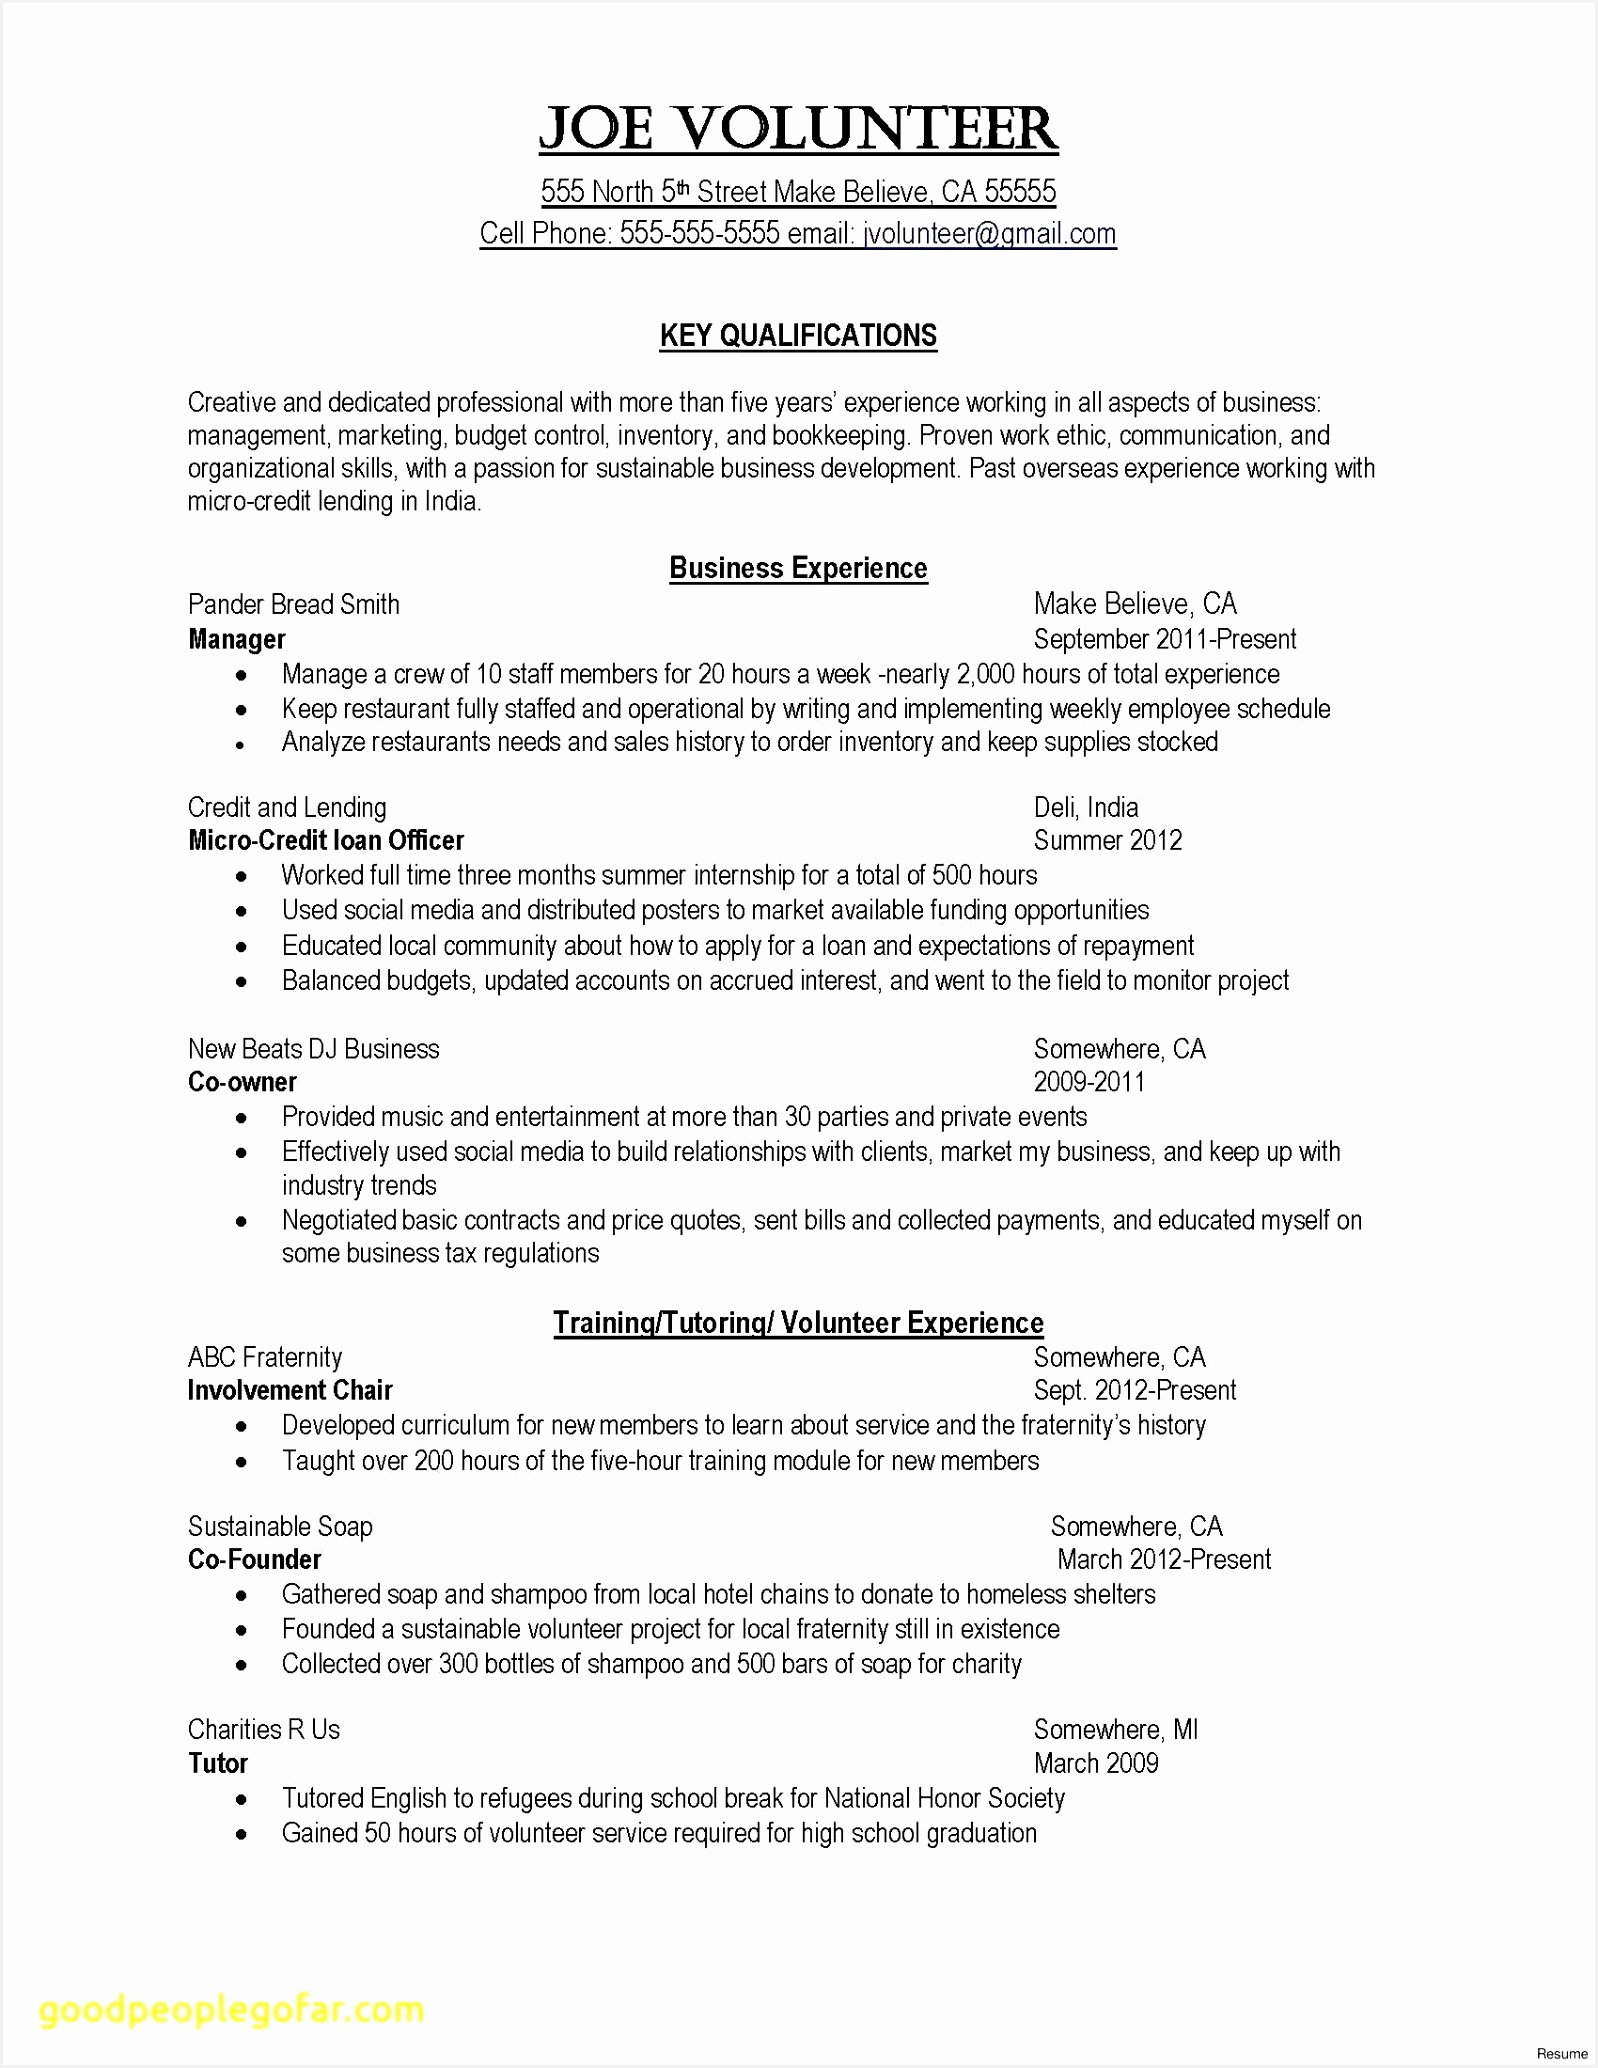 How to Get A Resume Ggkuo Awesome Sample Resume Business Development Manager In India Valid Of 5 How to Get A Resume